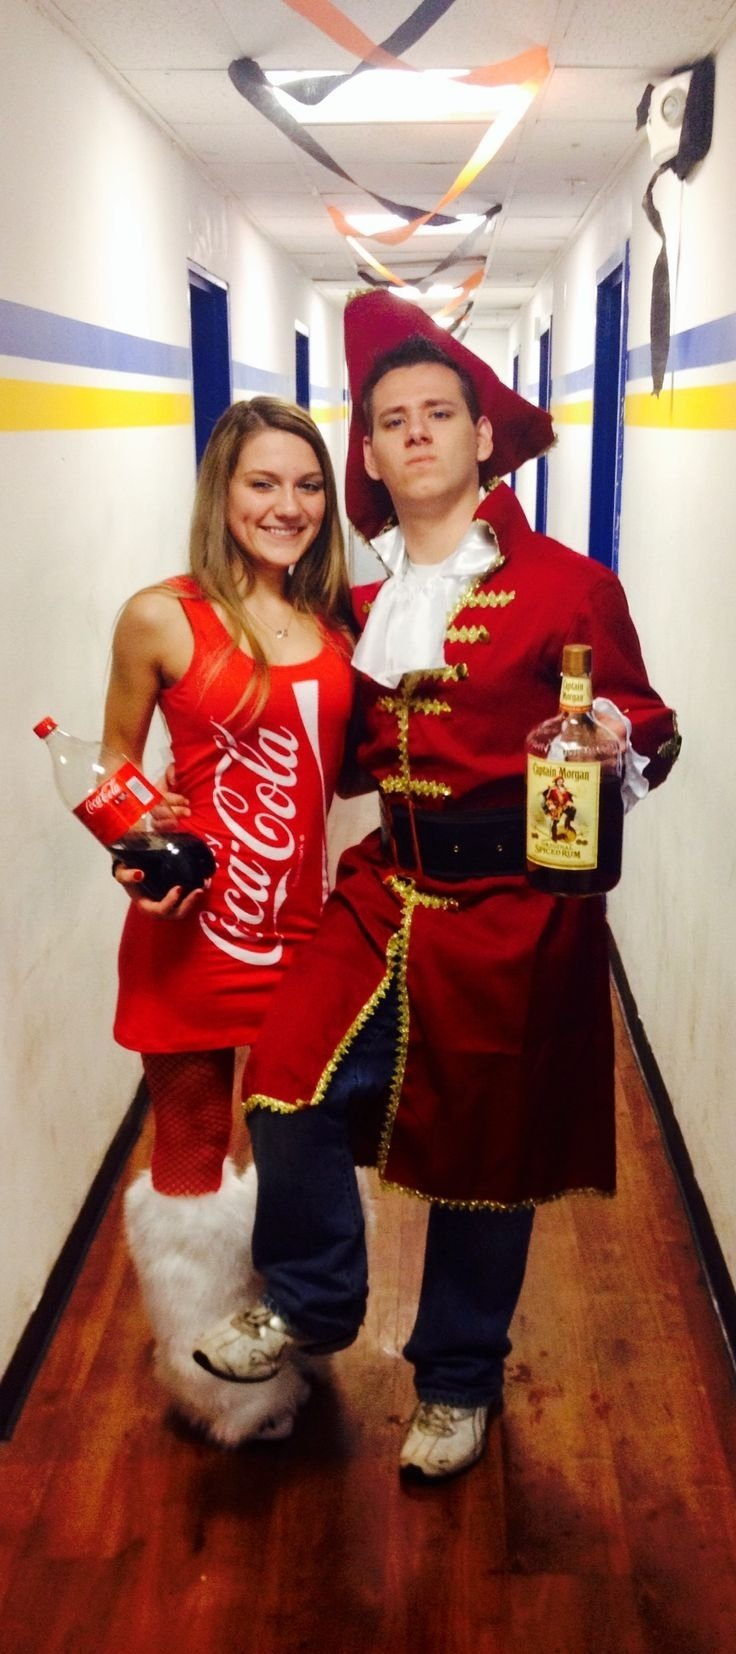 10 Fabulous Funny Halloween Costume Ideas For Couples 24 best halloween costumes images on pinterest costume  sc 1 st  Unique Ideas 2018 & 10 Fabulous Funny Halloween Costume Ideas For Couples